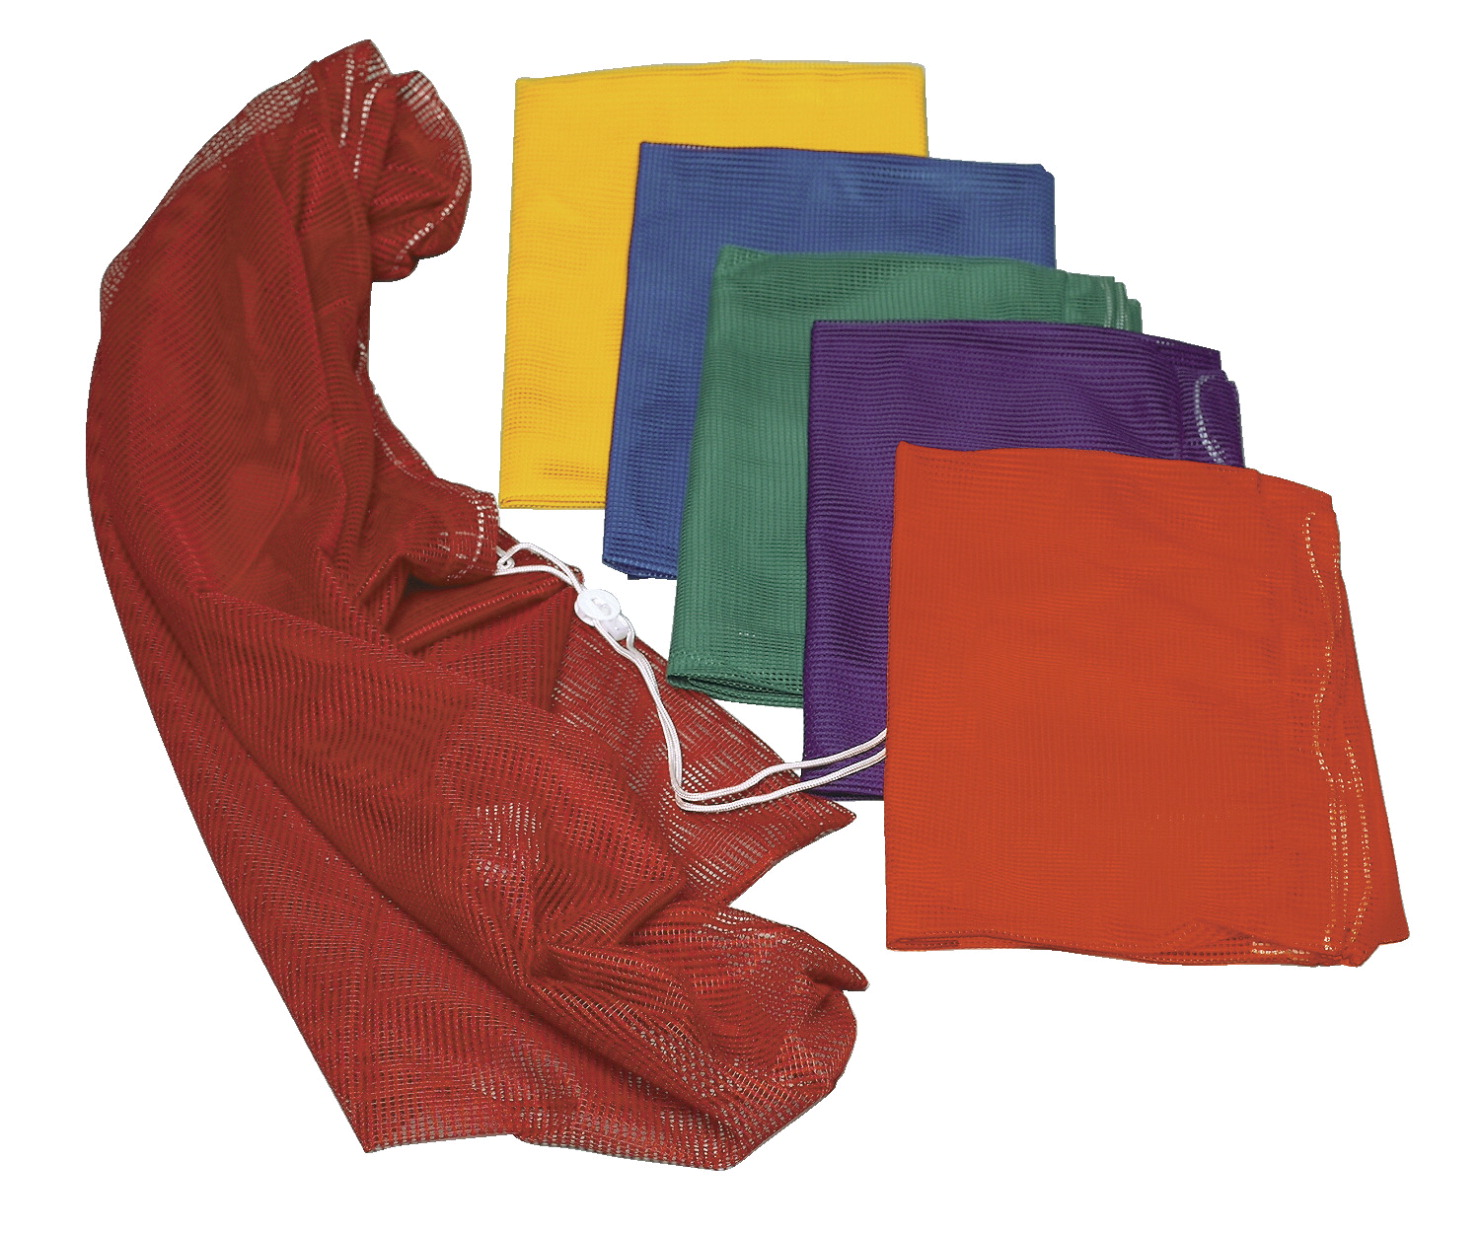 Sportime Heavy-Duty Mesh Storage Bags, 24 x 36 Inches, Assorted Colors, Set of 6